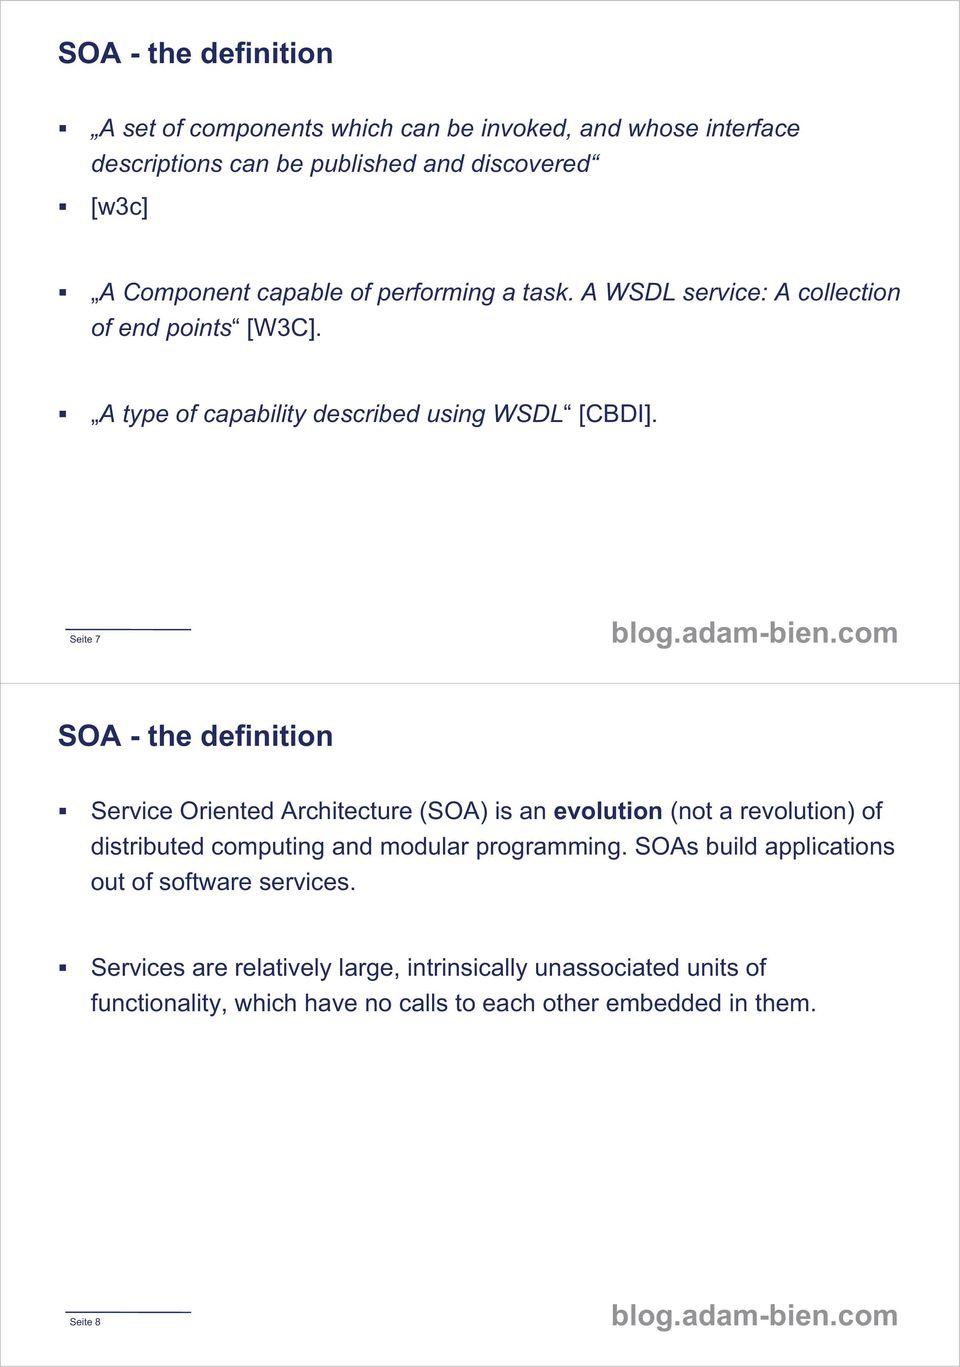 Seite 7 SOA - the definition Service Oriented Architecture (SOA) is an evolution (not a revolution) of distributed ib t d computing and modular programming.